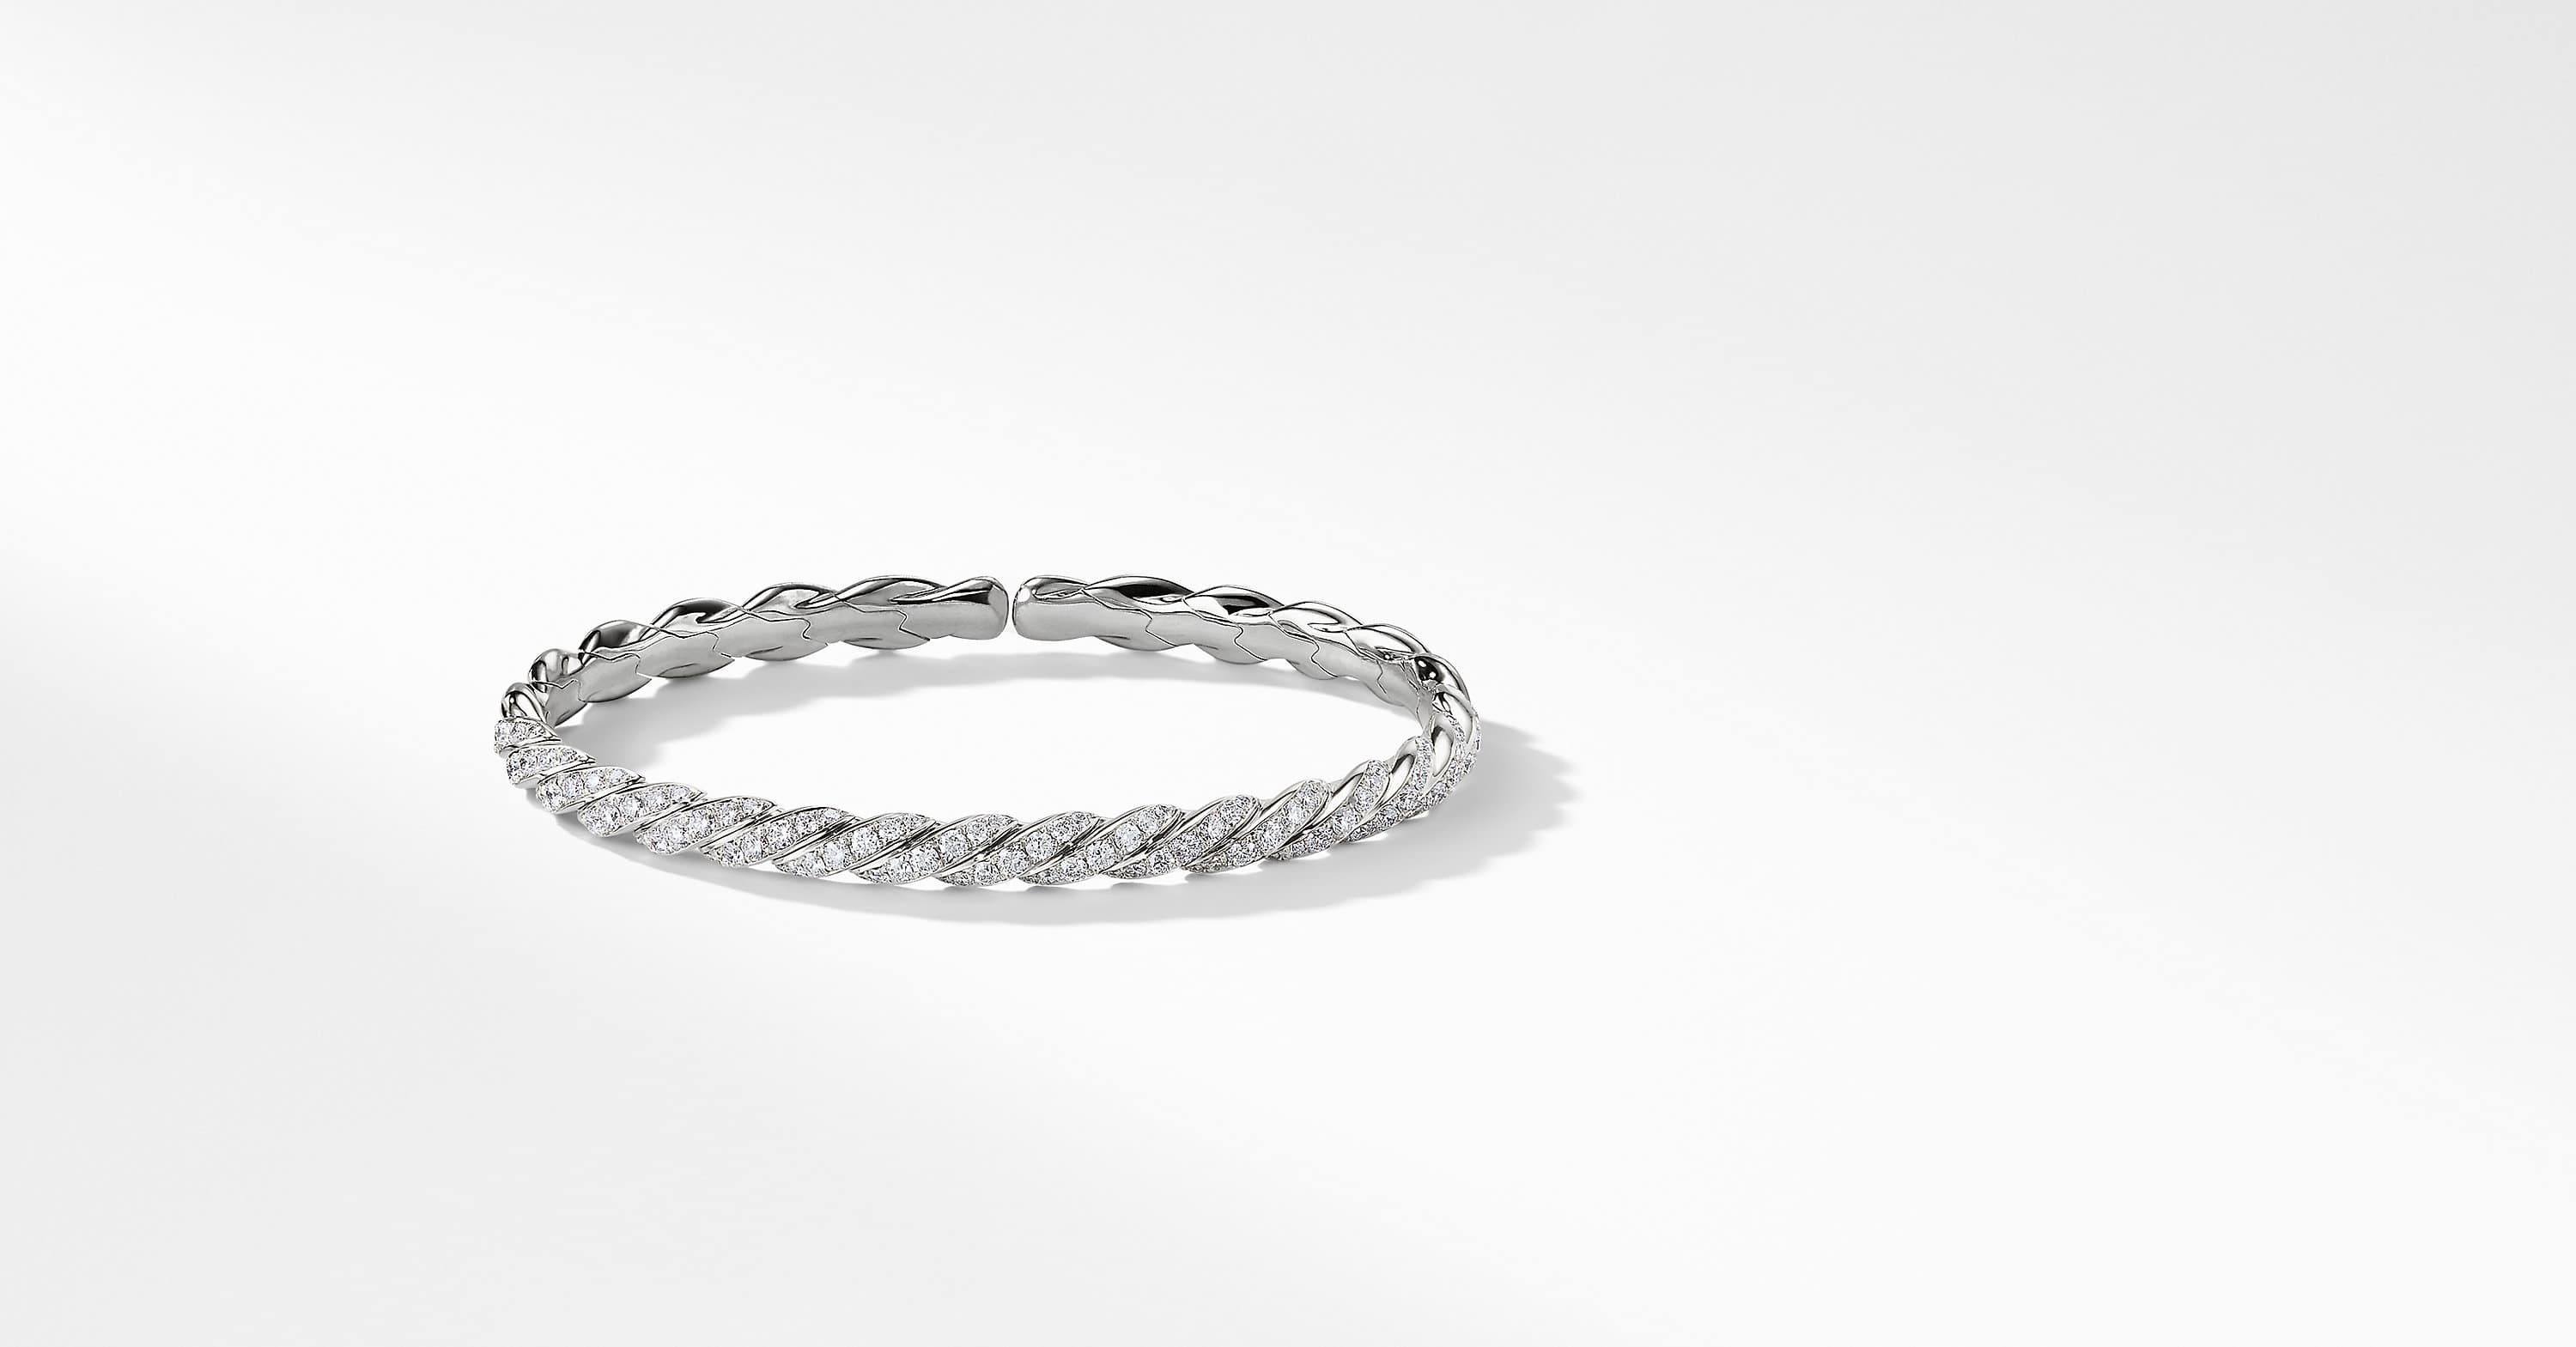 Pavéflex Bracelet with Diamonds in White Gold